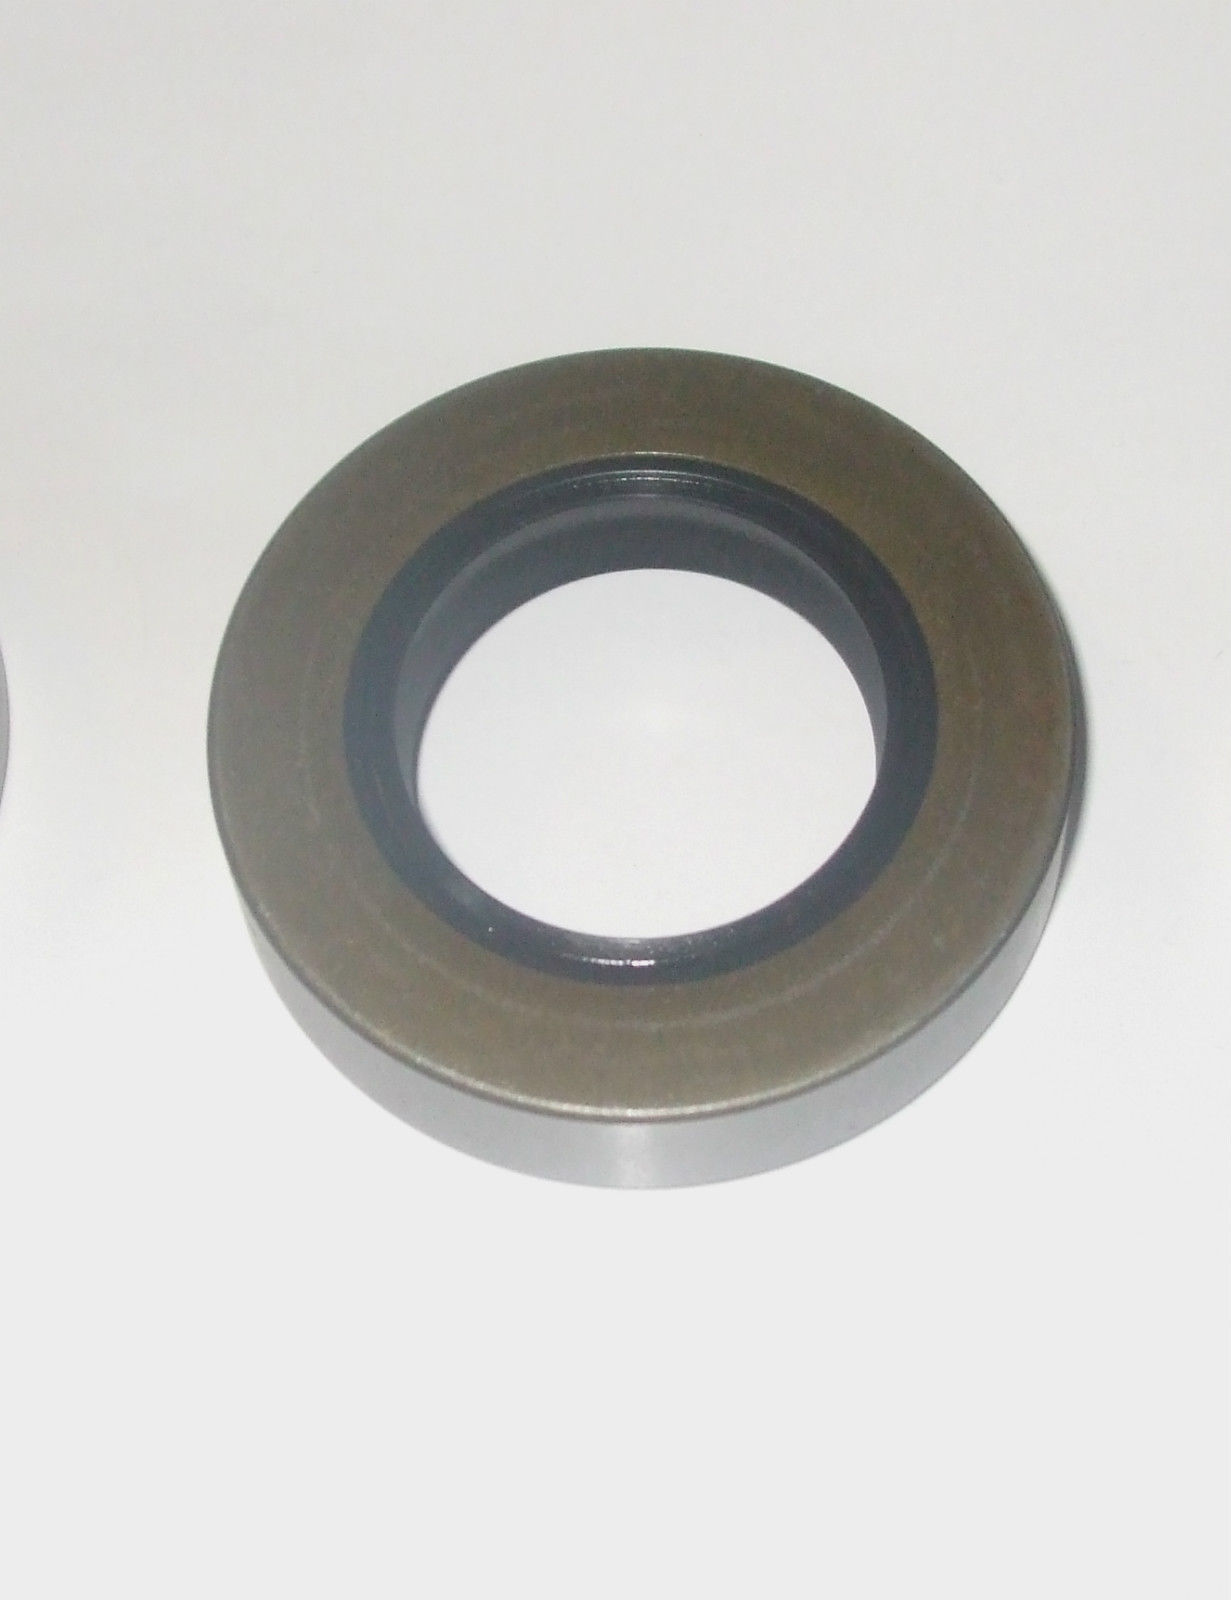 front diff axle pinion oil seal x1 tvr 1600m 2500m 3000m parts 1972 77 on. Black Bedroom Furniture Sets. Home Design Ideas